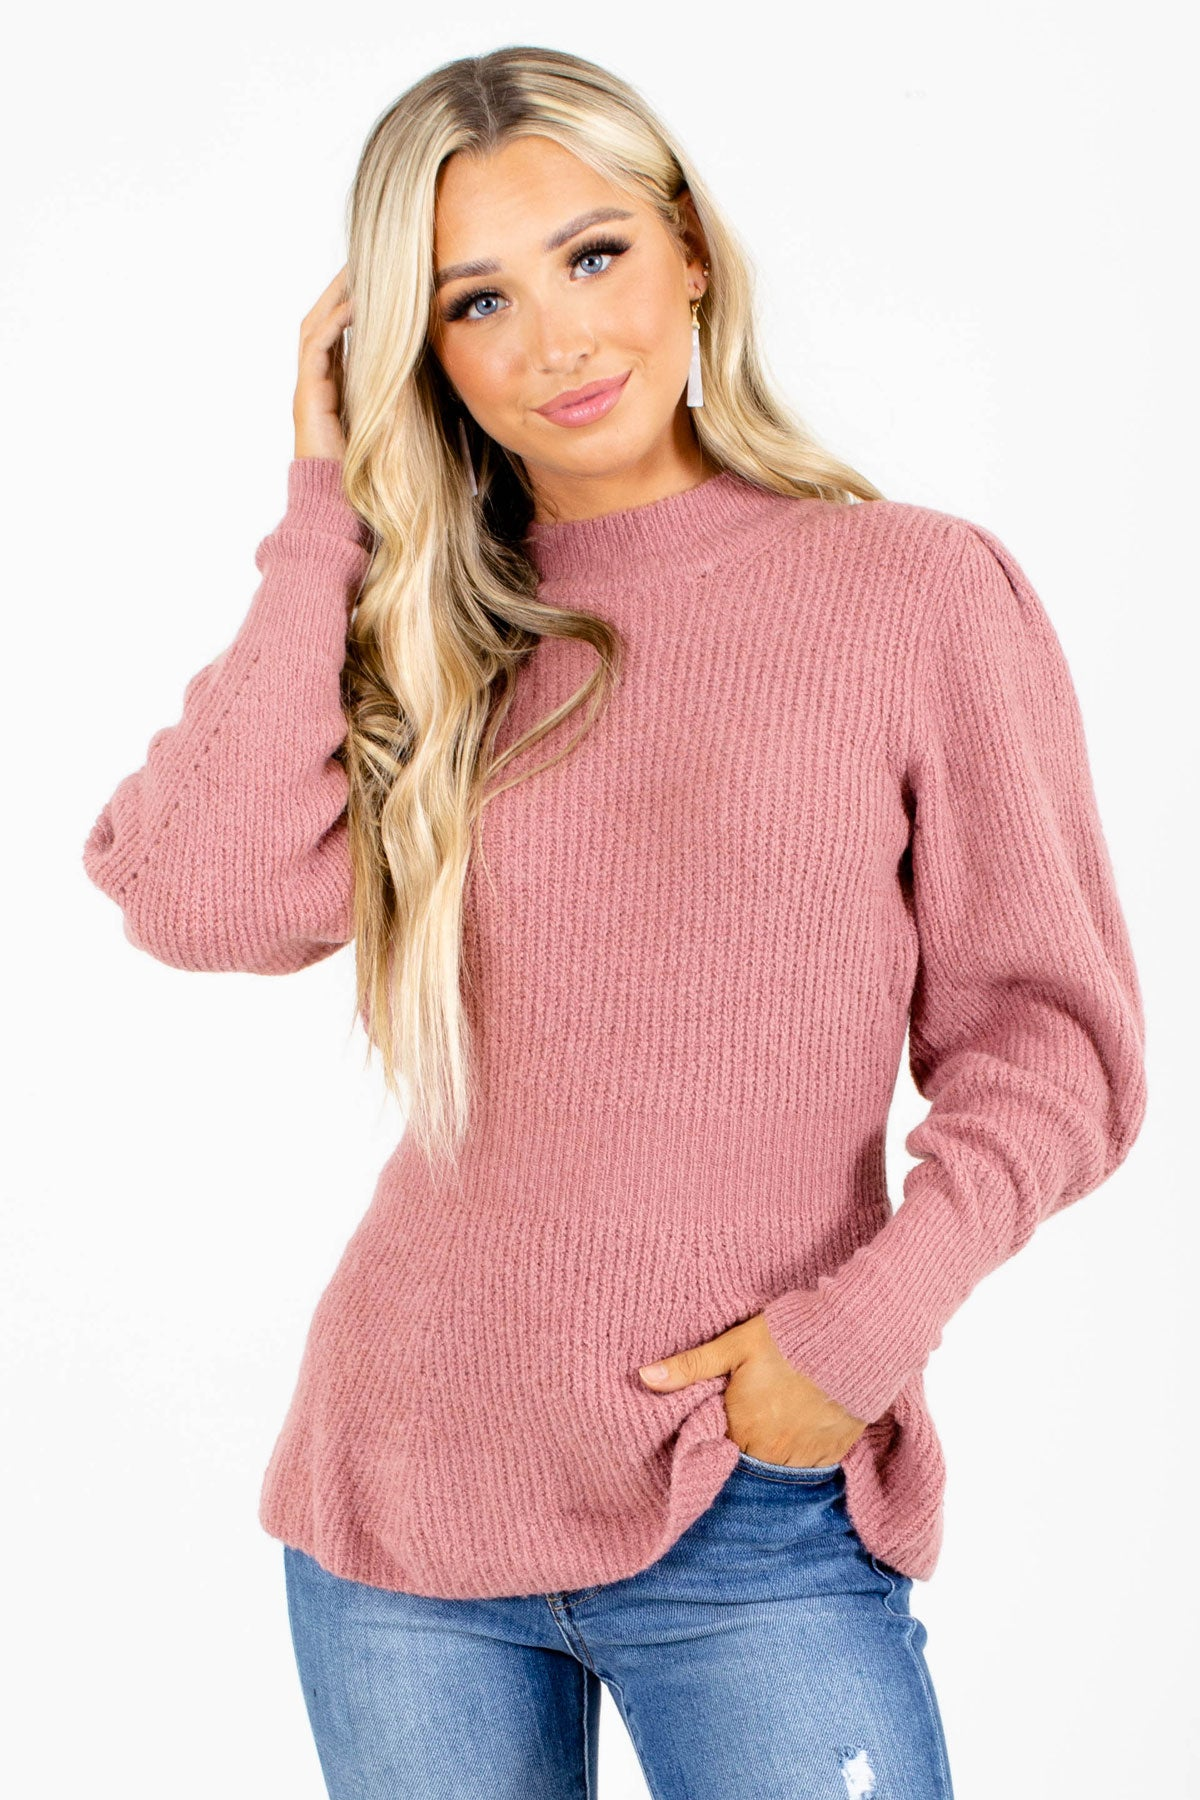 Mauve Puff Sleeve Style Boutique Sweaters for Women